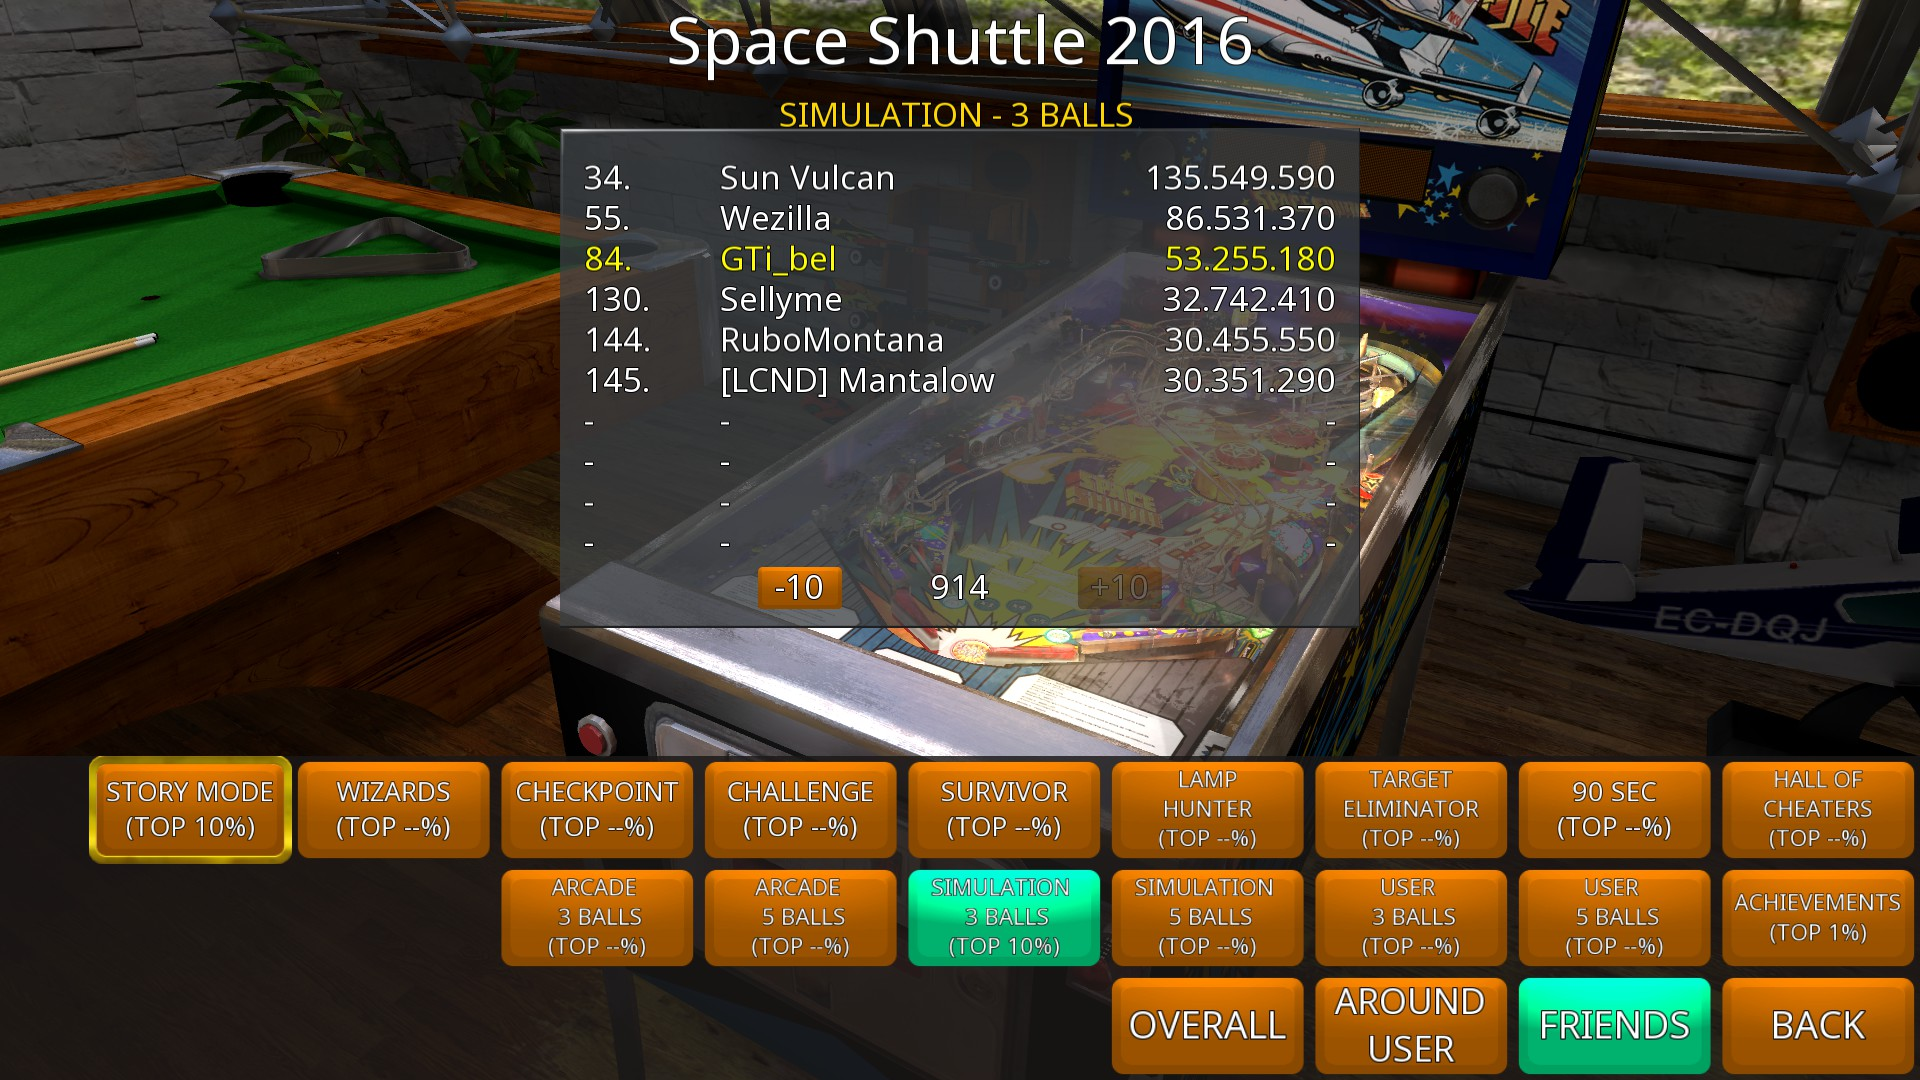 GTibel: Zaccaria Pinball: Space Shuttle 2016 [3 balls] (PC) 53,255,180 points on 2018-09-02 11:26:48